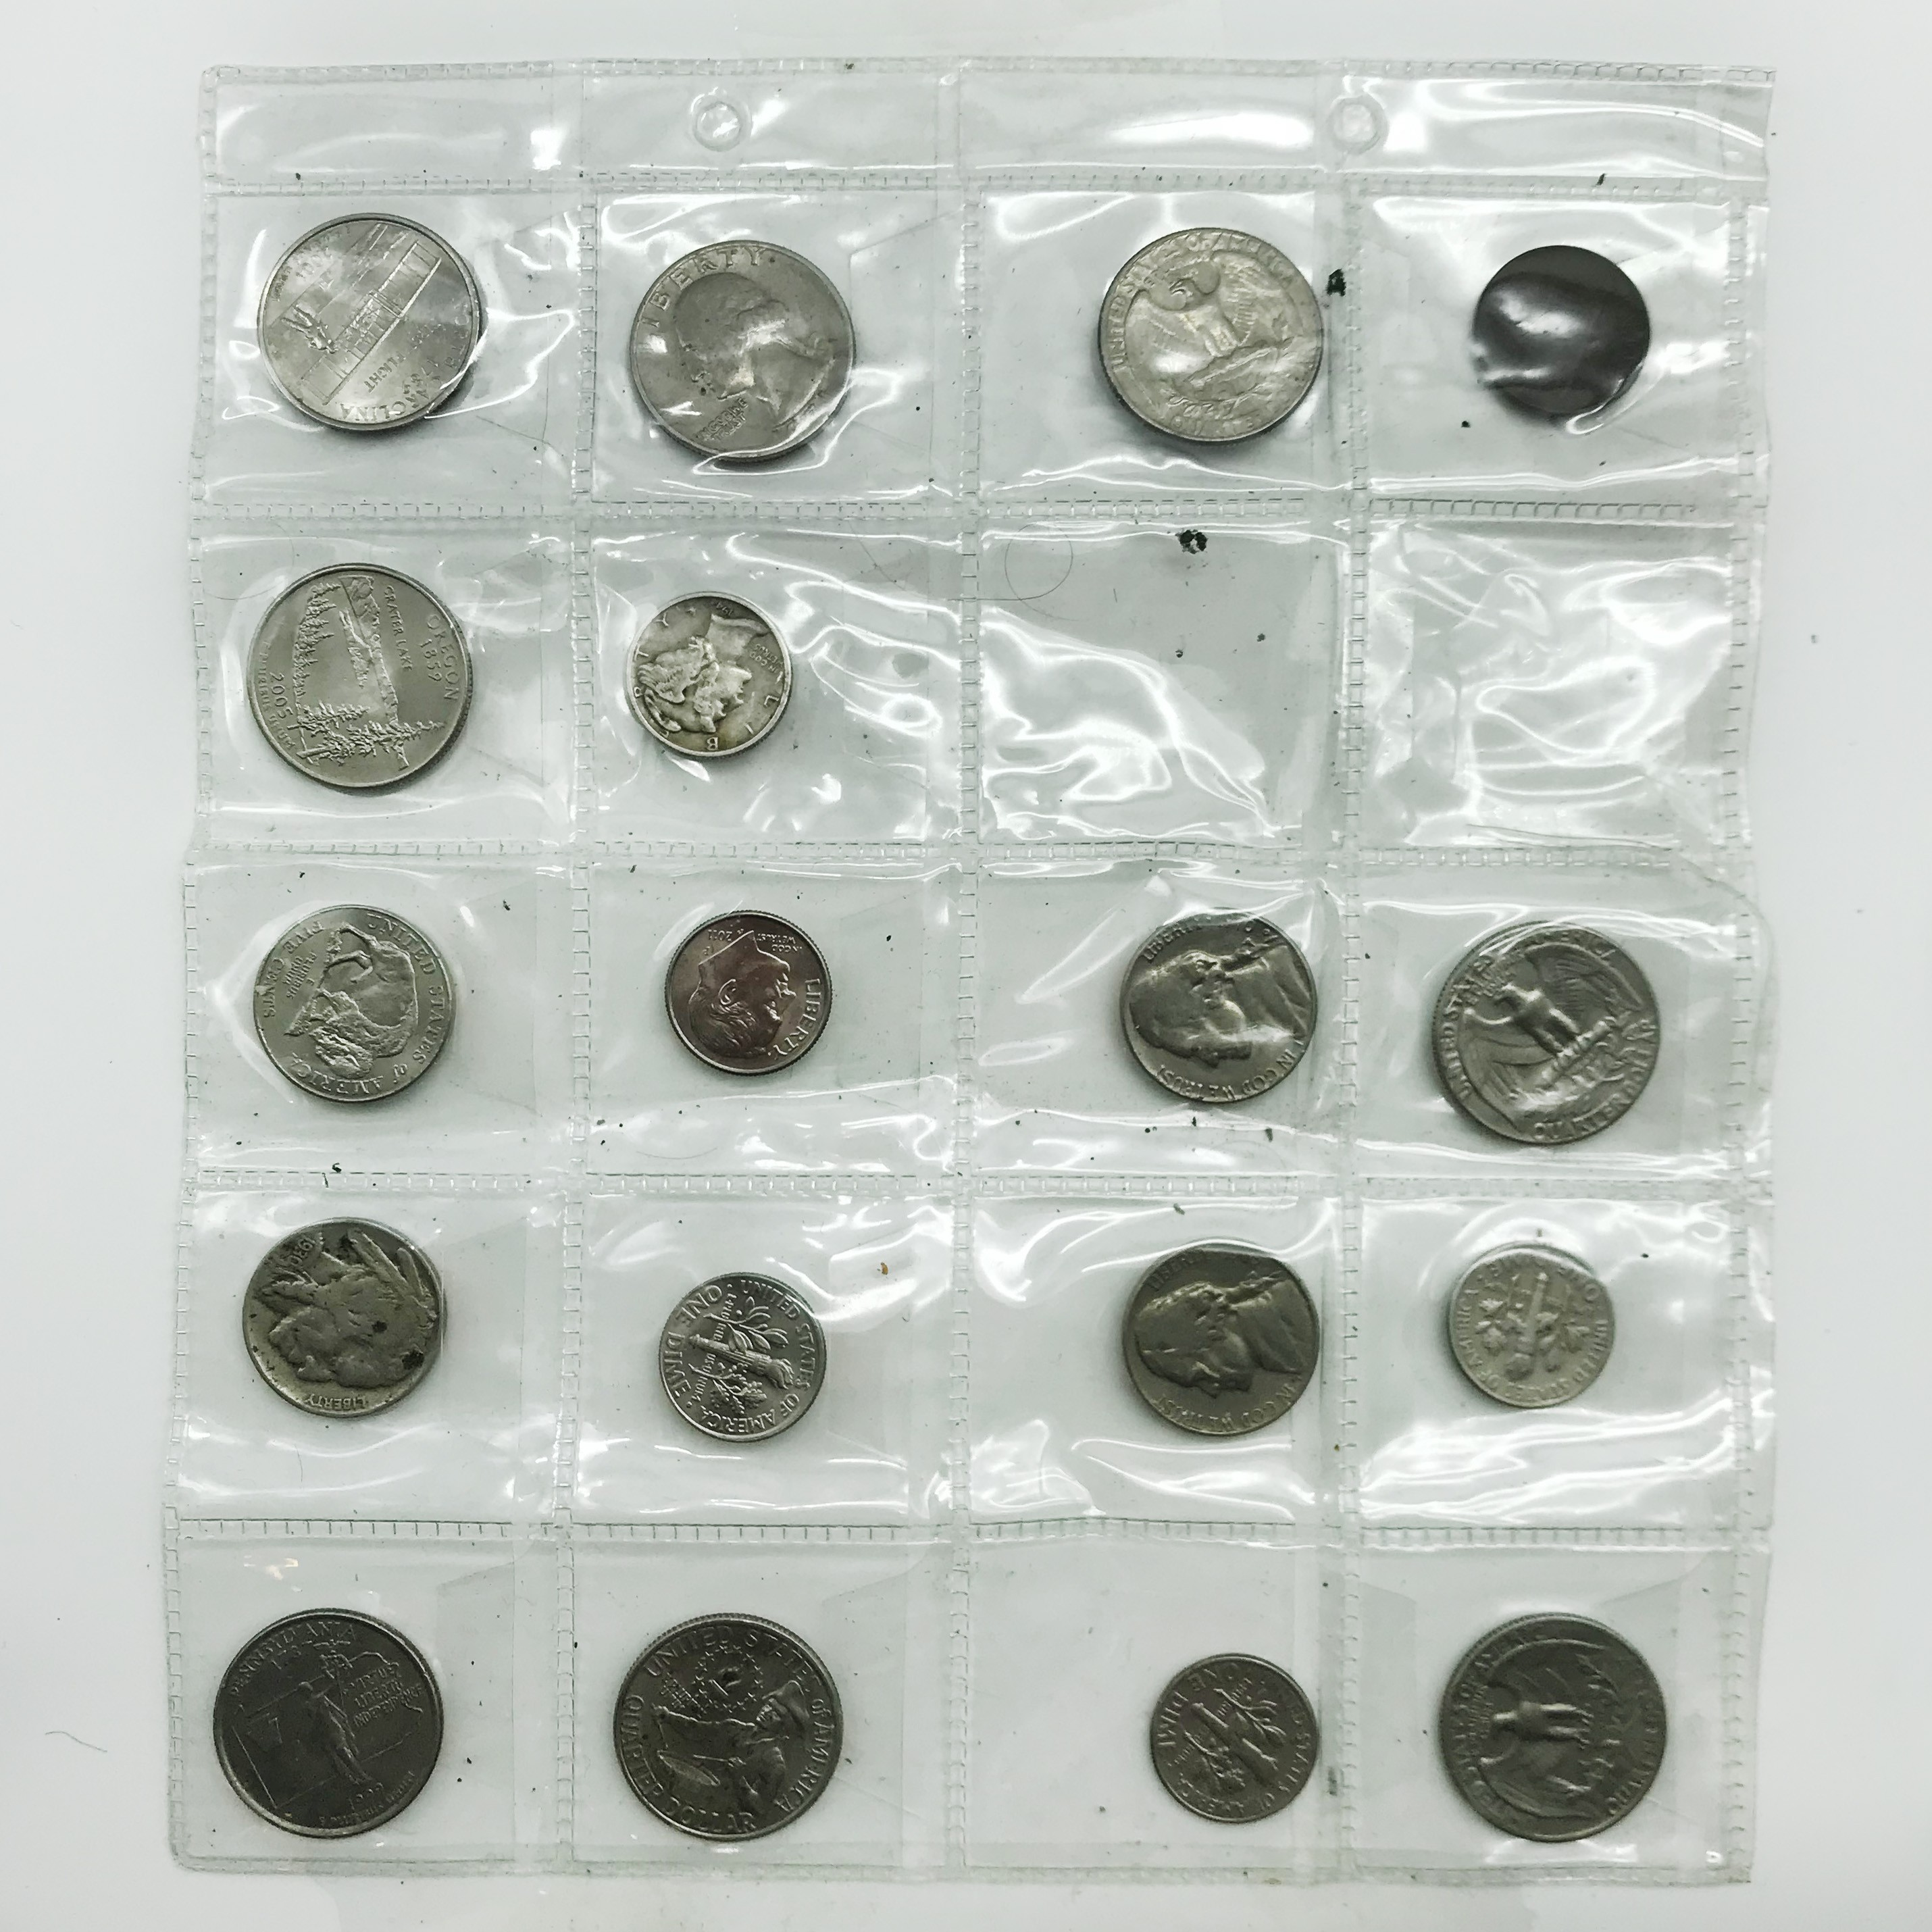 Lot 22 - SMALL COLLECTION OF COINS INCLUDING SOME SILVER